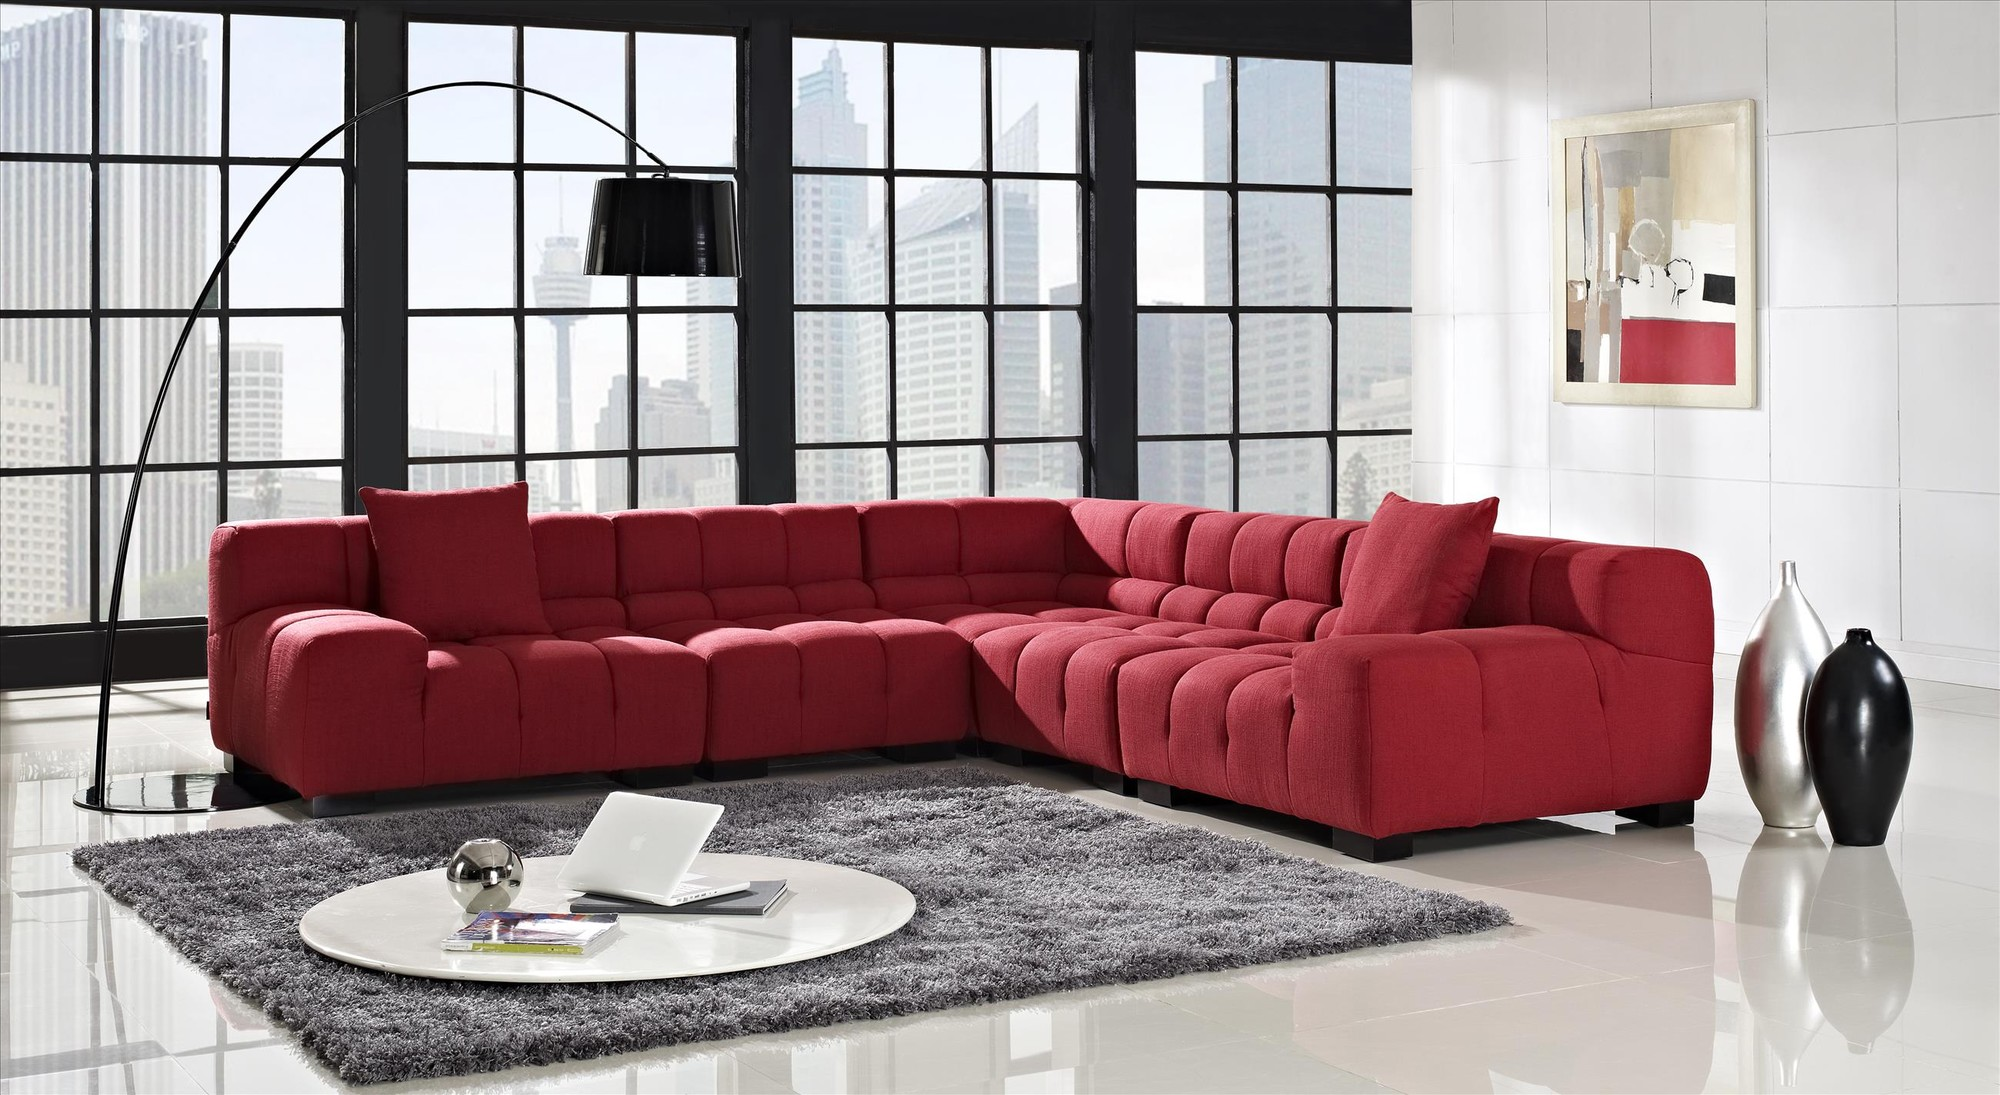 How To Choose Modern Sectional Sofas For Your Home